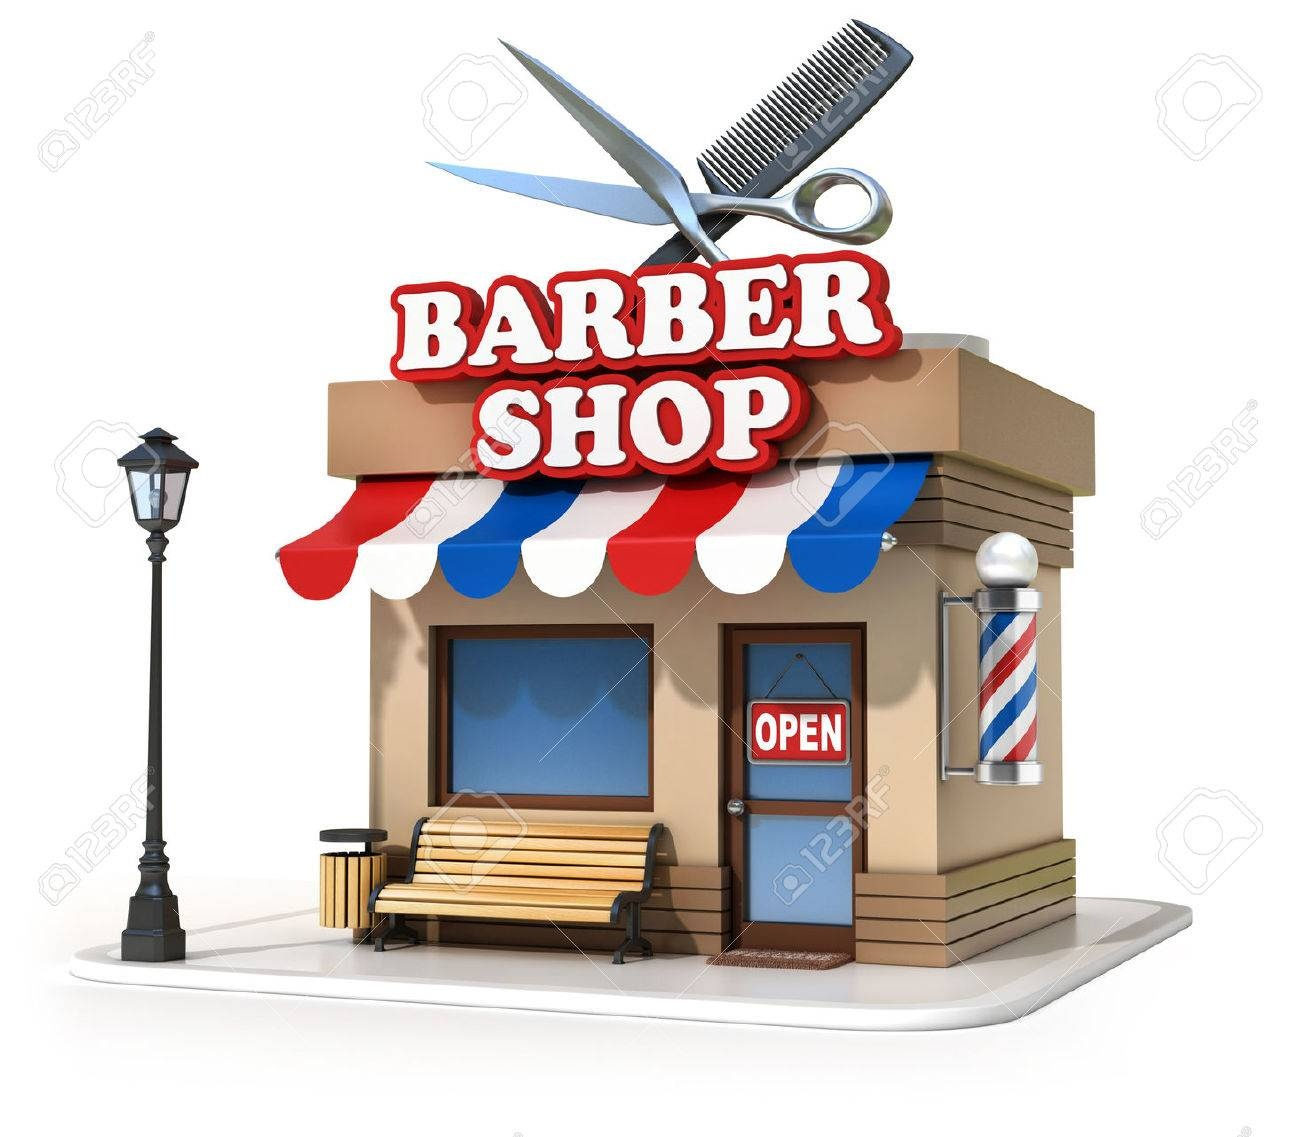 A Busy Barber Shop in a Prime SW London Location